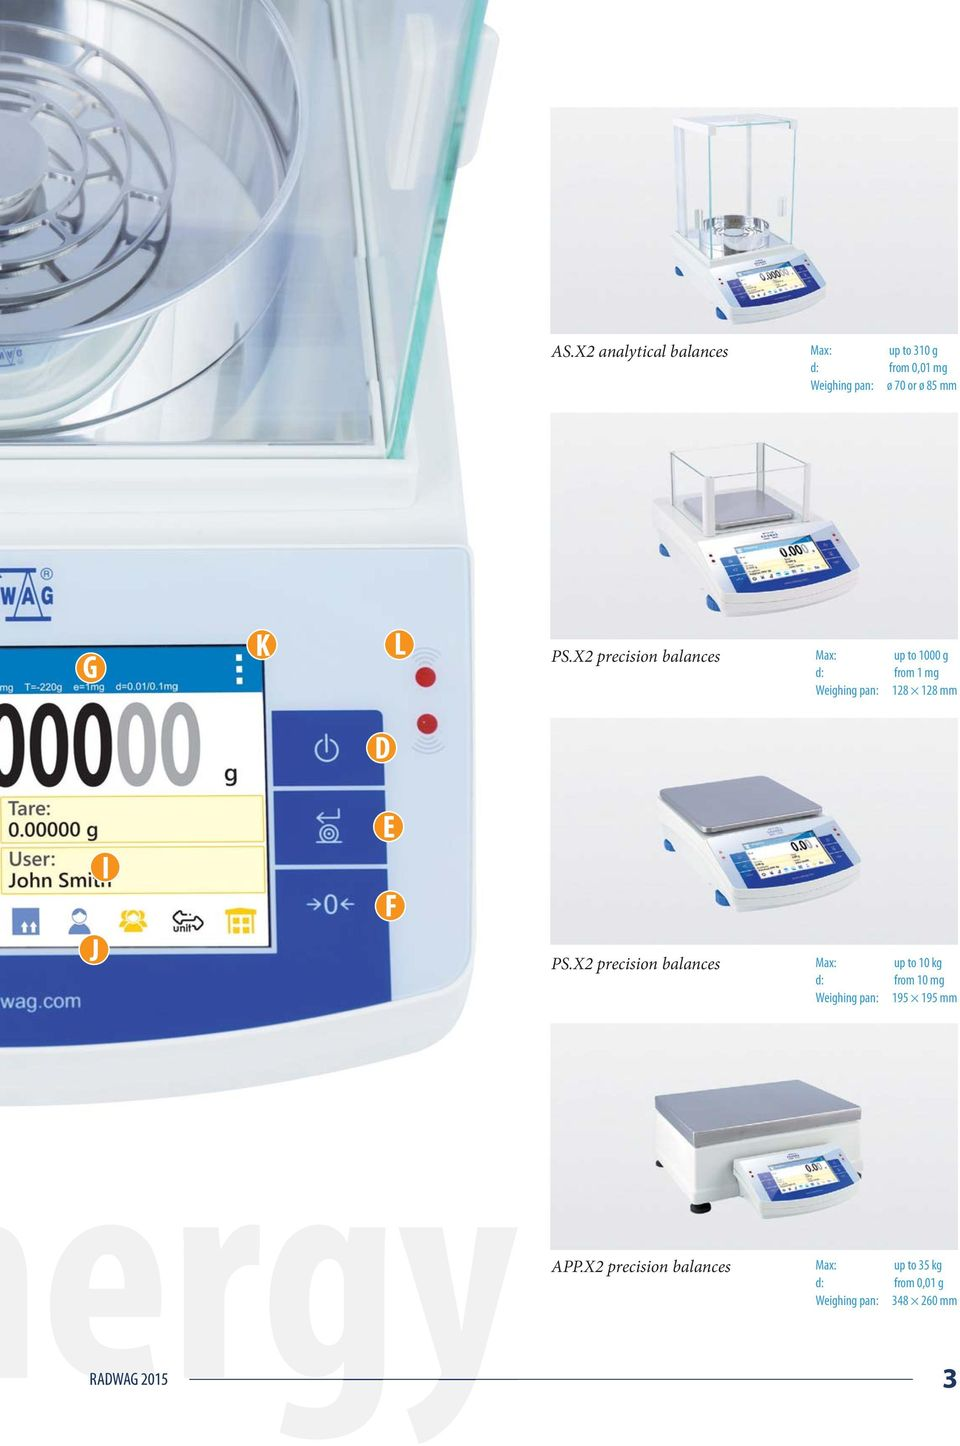 X2 precision balances Max: up to 1000 g d: from 1 mg Weighing pan: 128 128 mm D J I E F